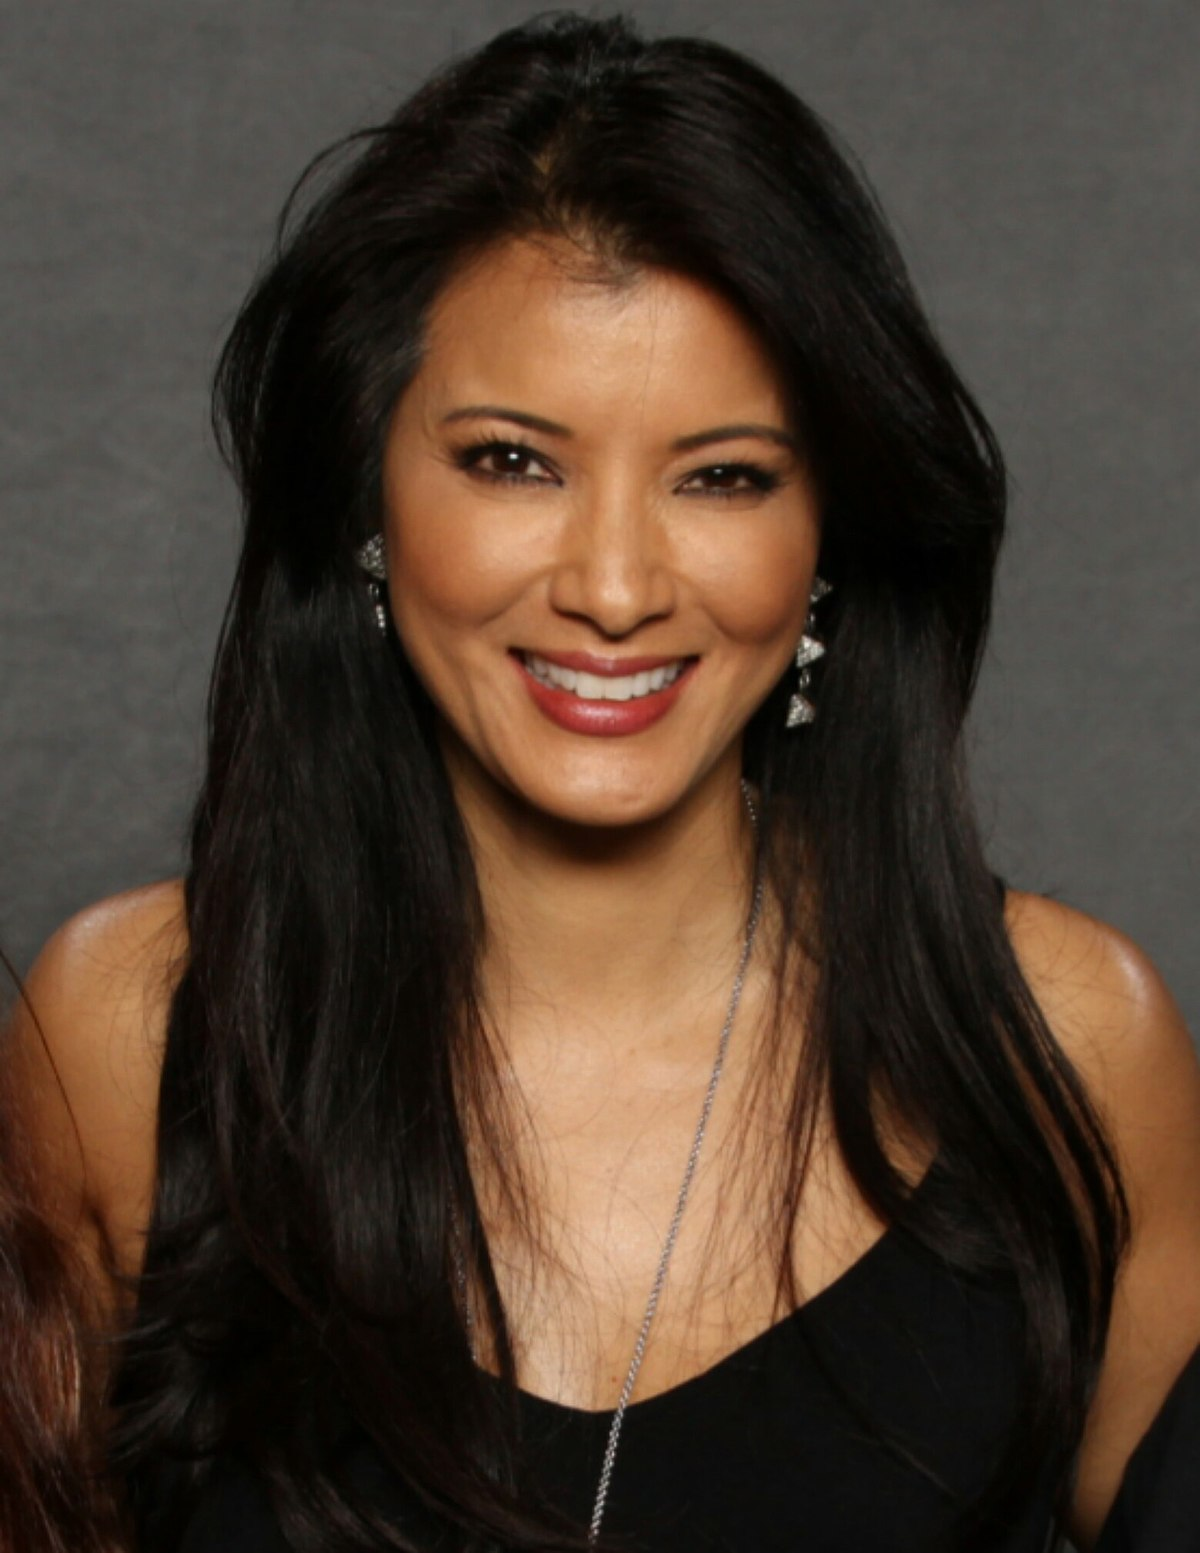 Images Kelly Hu nude photos 2019